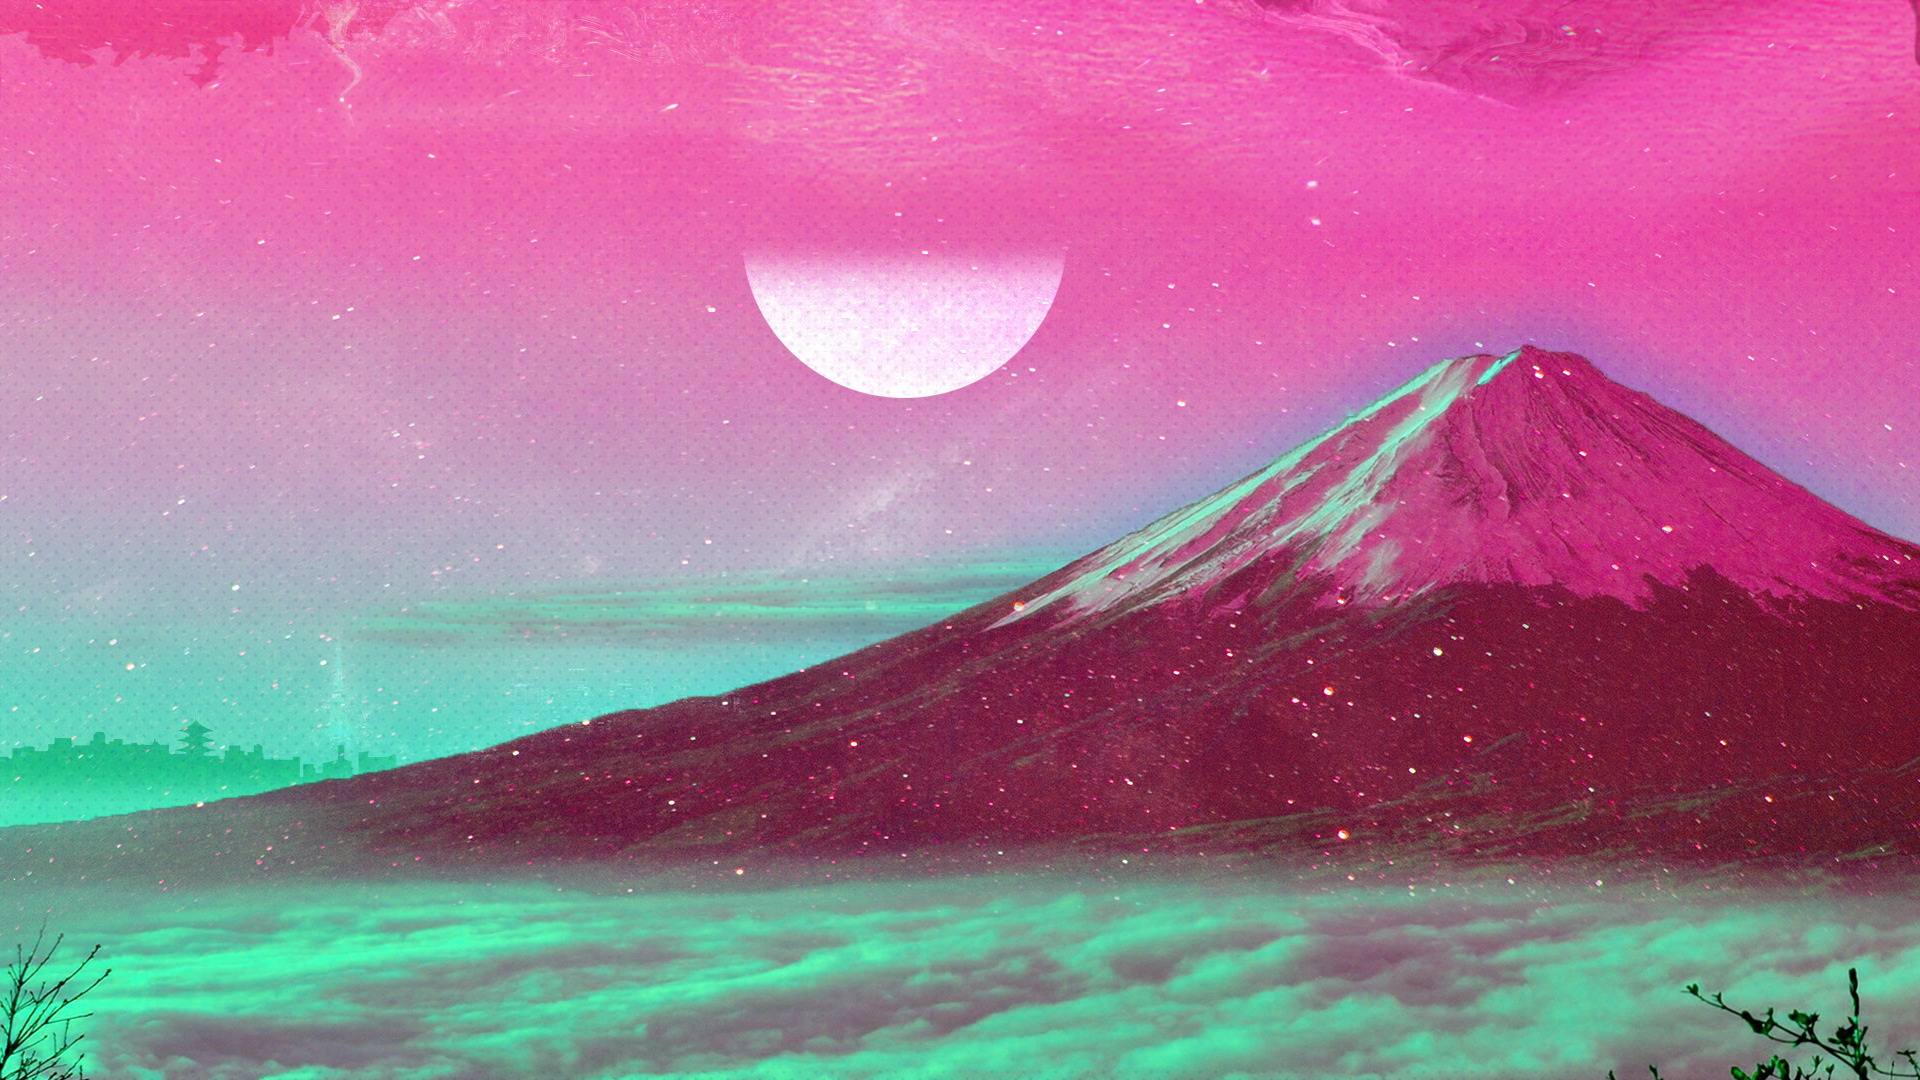 Vapourwave Styled Mount Fuji [1920-1080] : Wallpapers